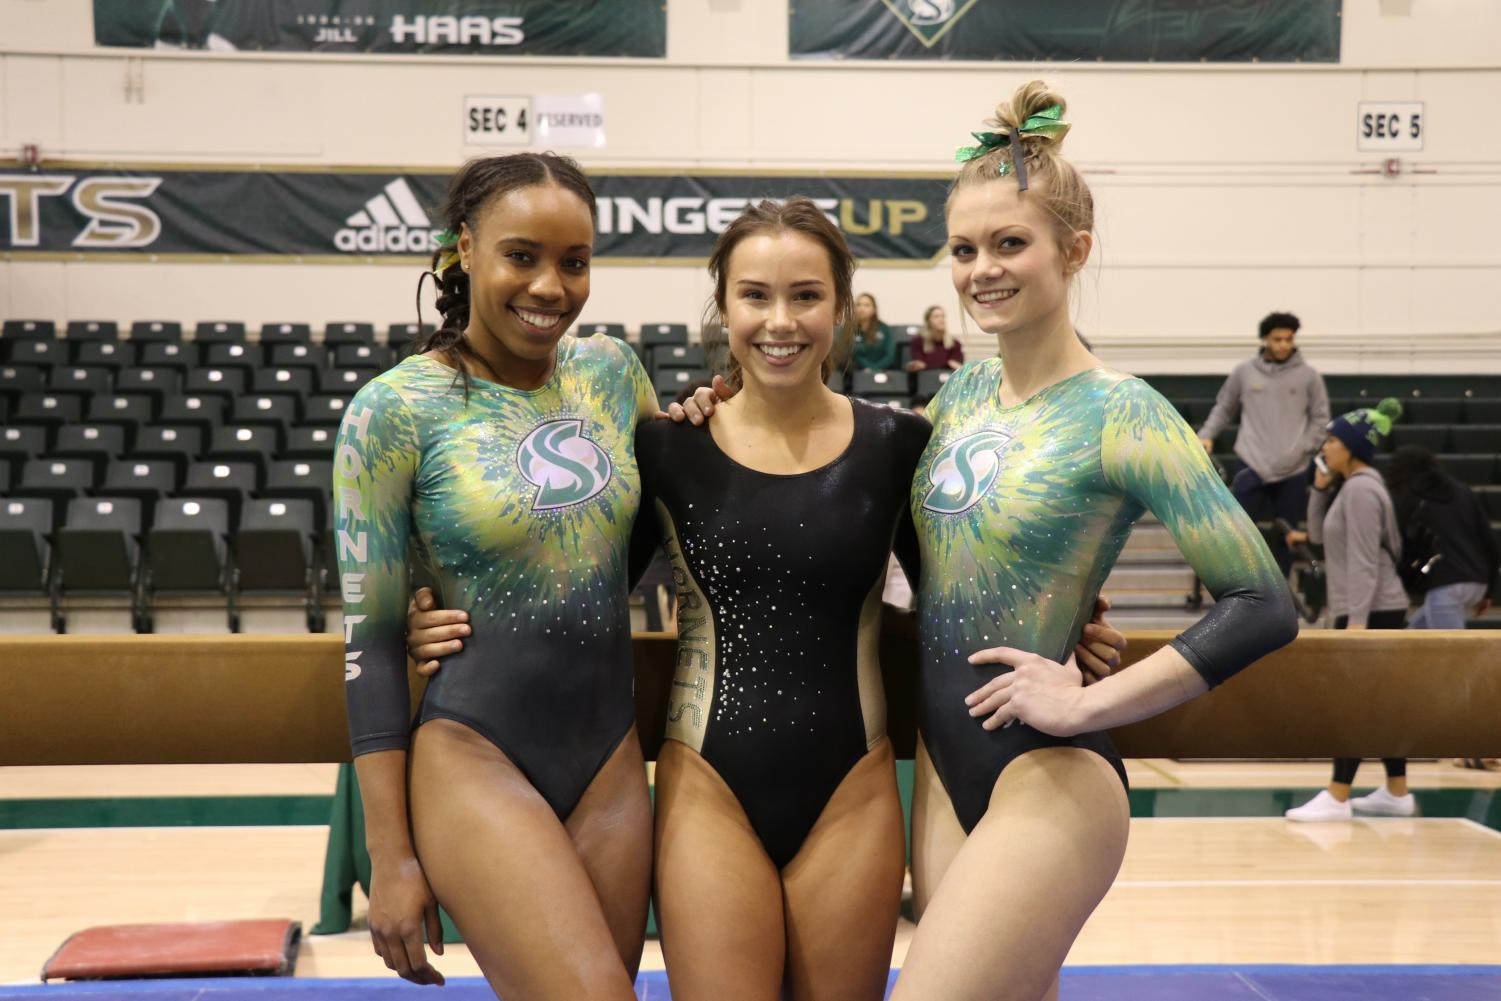 From left Jordyn Brent, Lauren Schmeiss and Jackie Sampson pose at the Nest after a meet. The three will be counted on for at least three routines each this season.